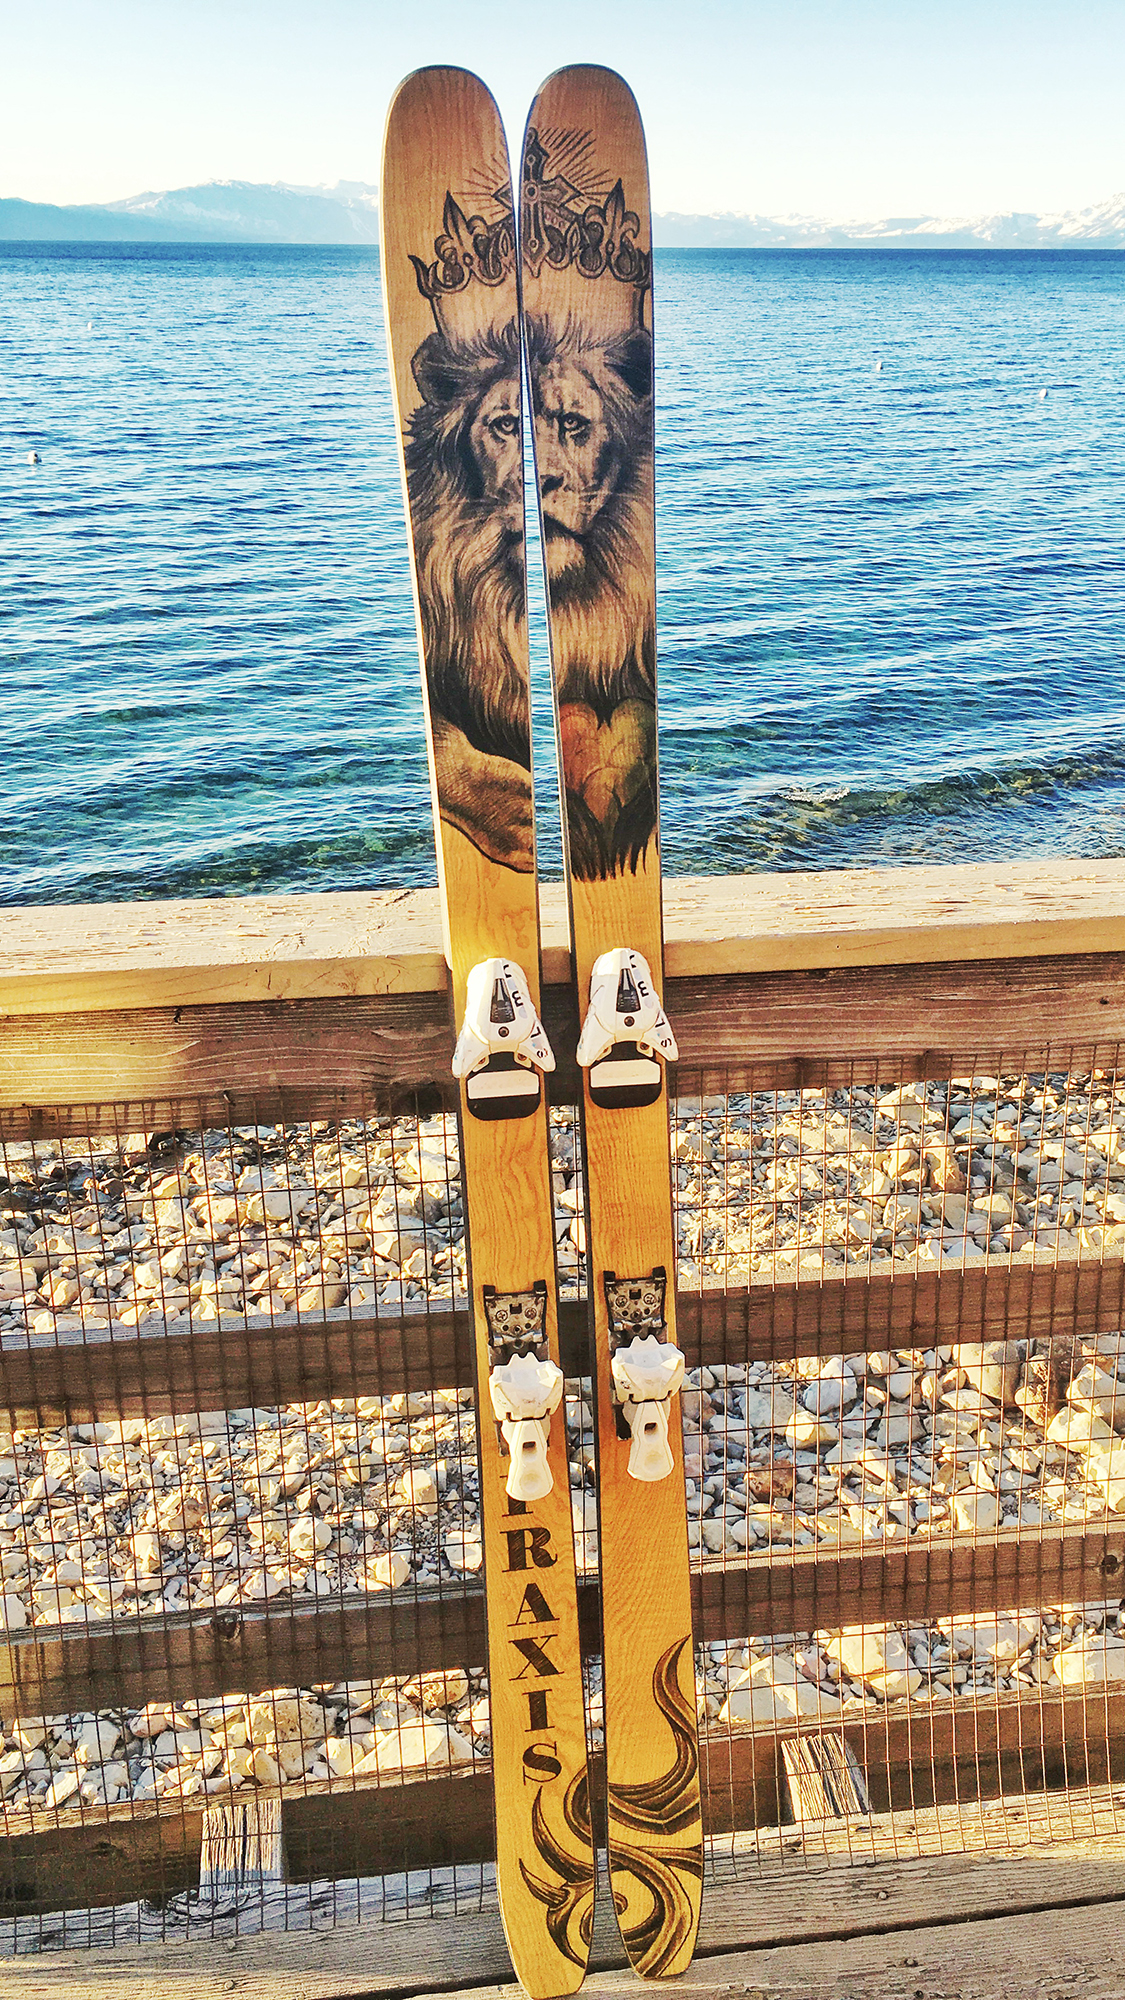 EXP ash veneer Jamaican lion Graphic art custom ski build